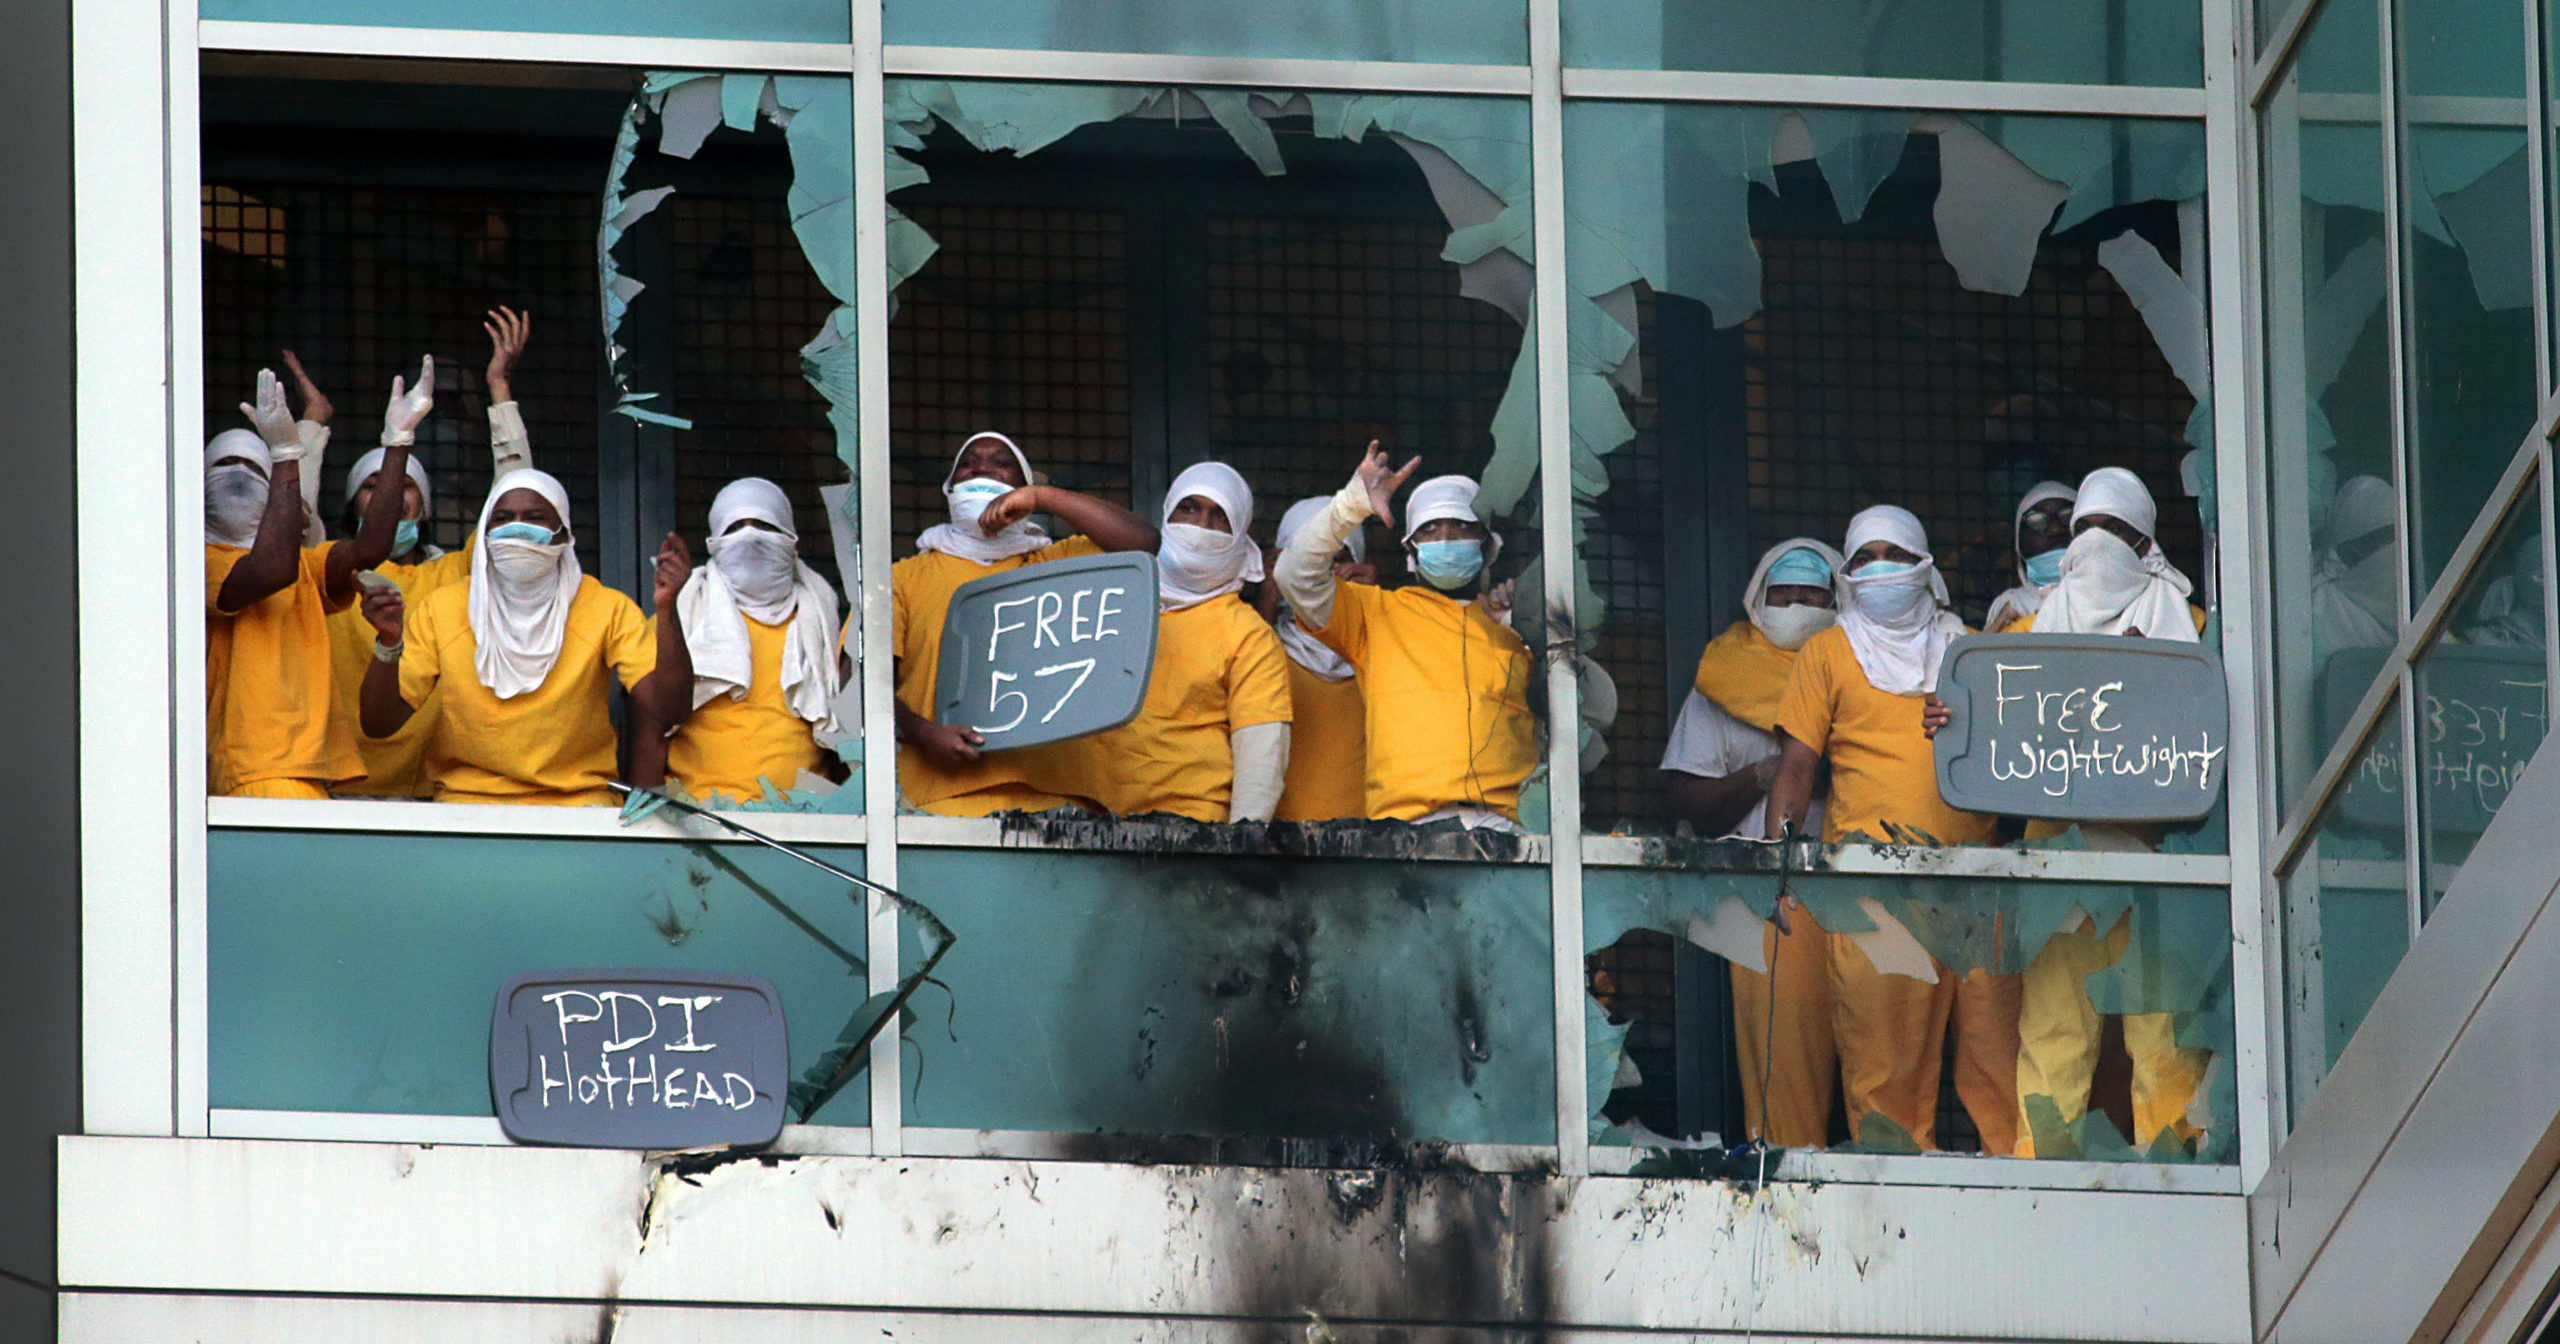 Inmates stand at broken windows at the St. Louis Justice Center on Feb. 6, 2021, in St. Louis, Missouri.